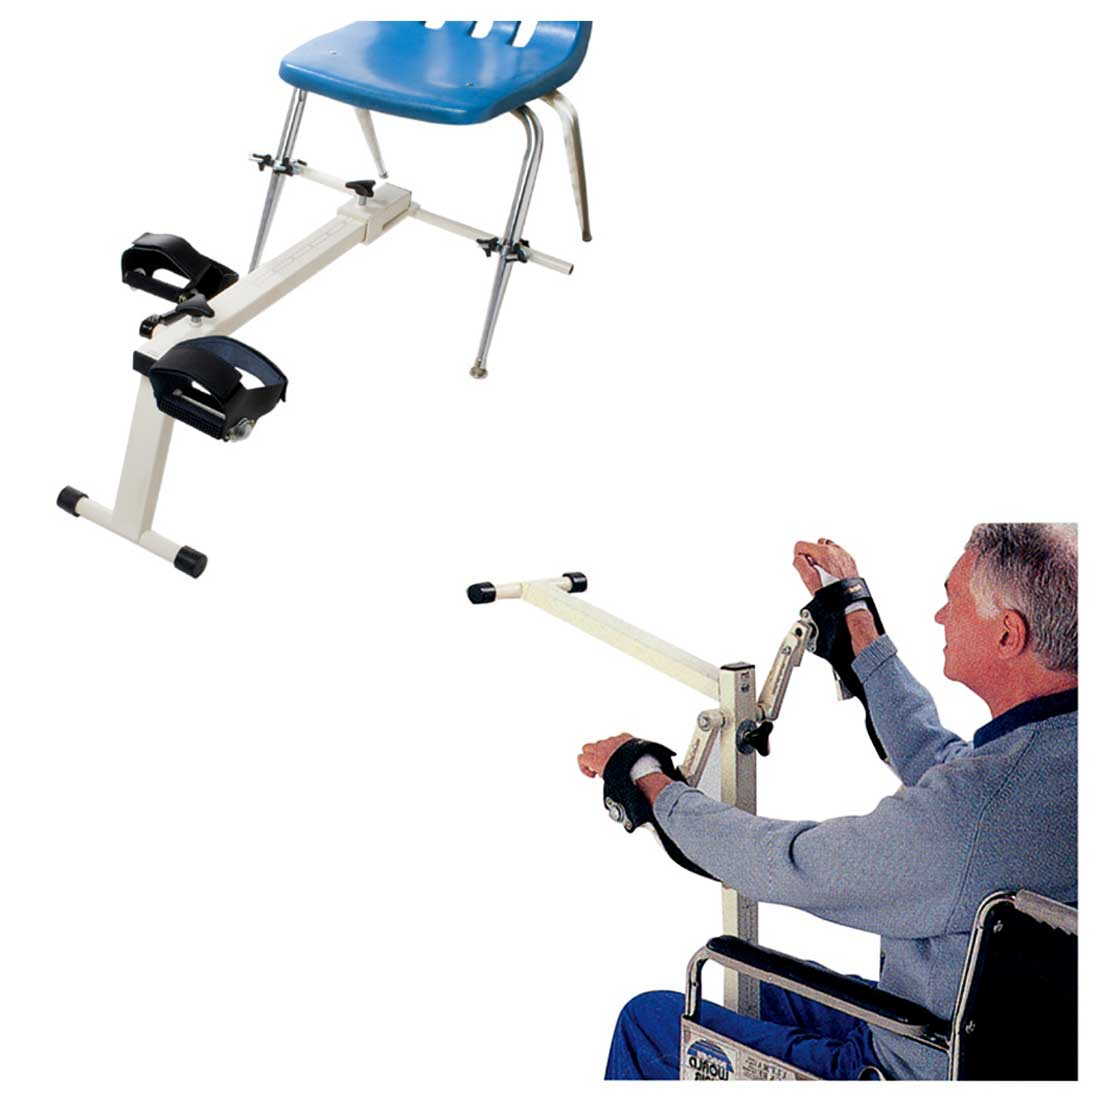 Cando Chair Cycle Pedal Exerciser - Deluxe